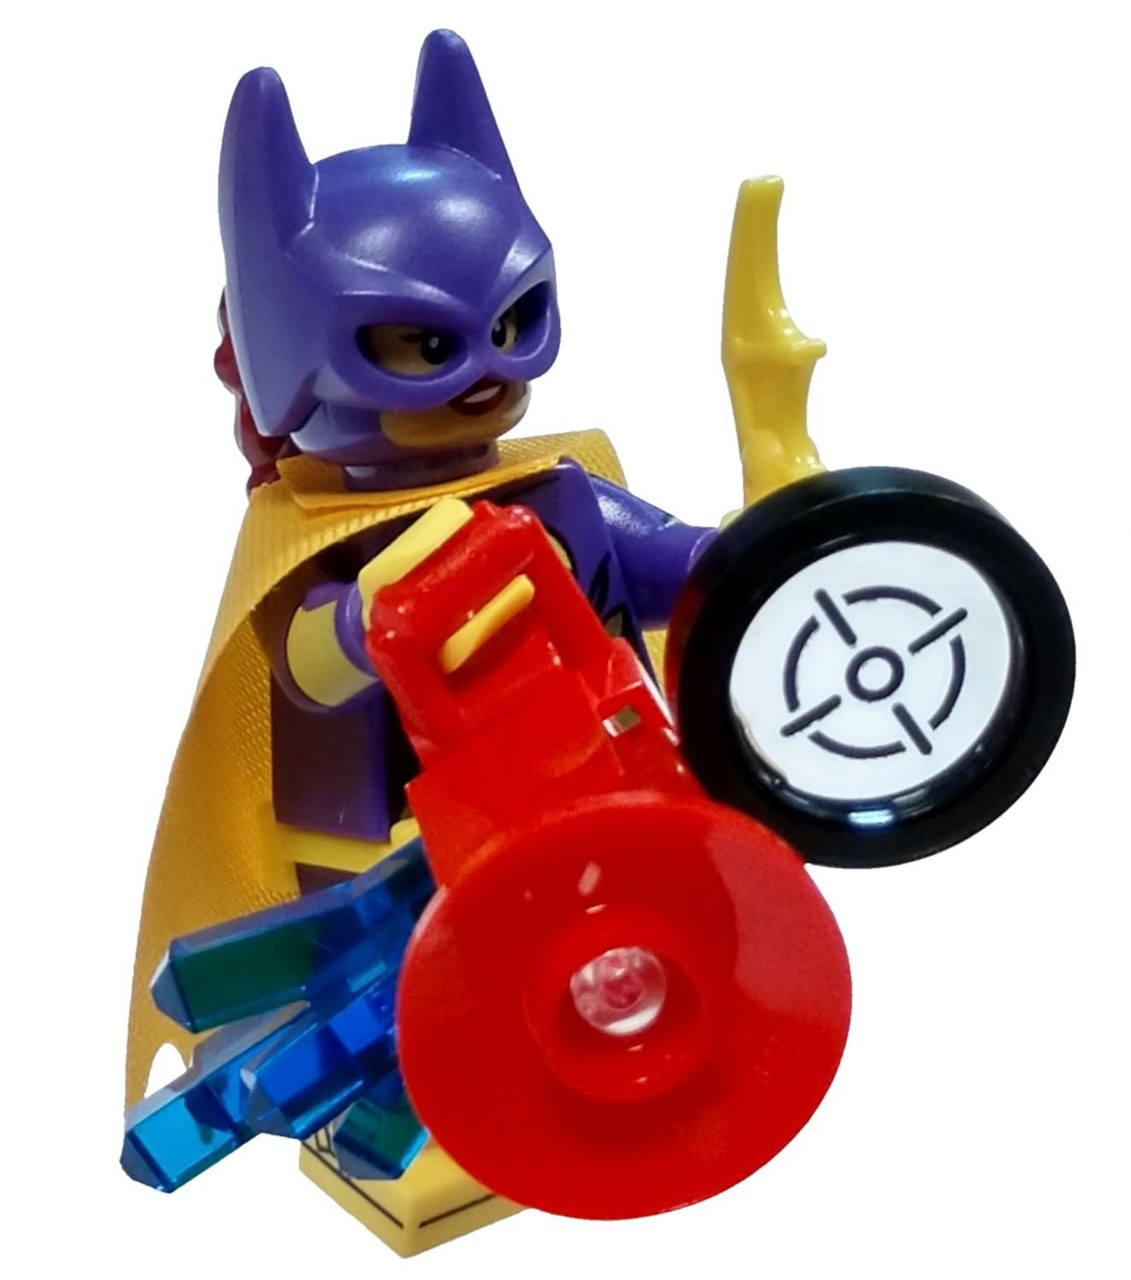 Bat Woman Mini Figure From Lego Batman Movie